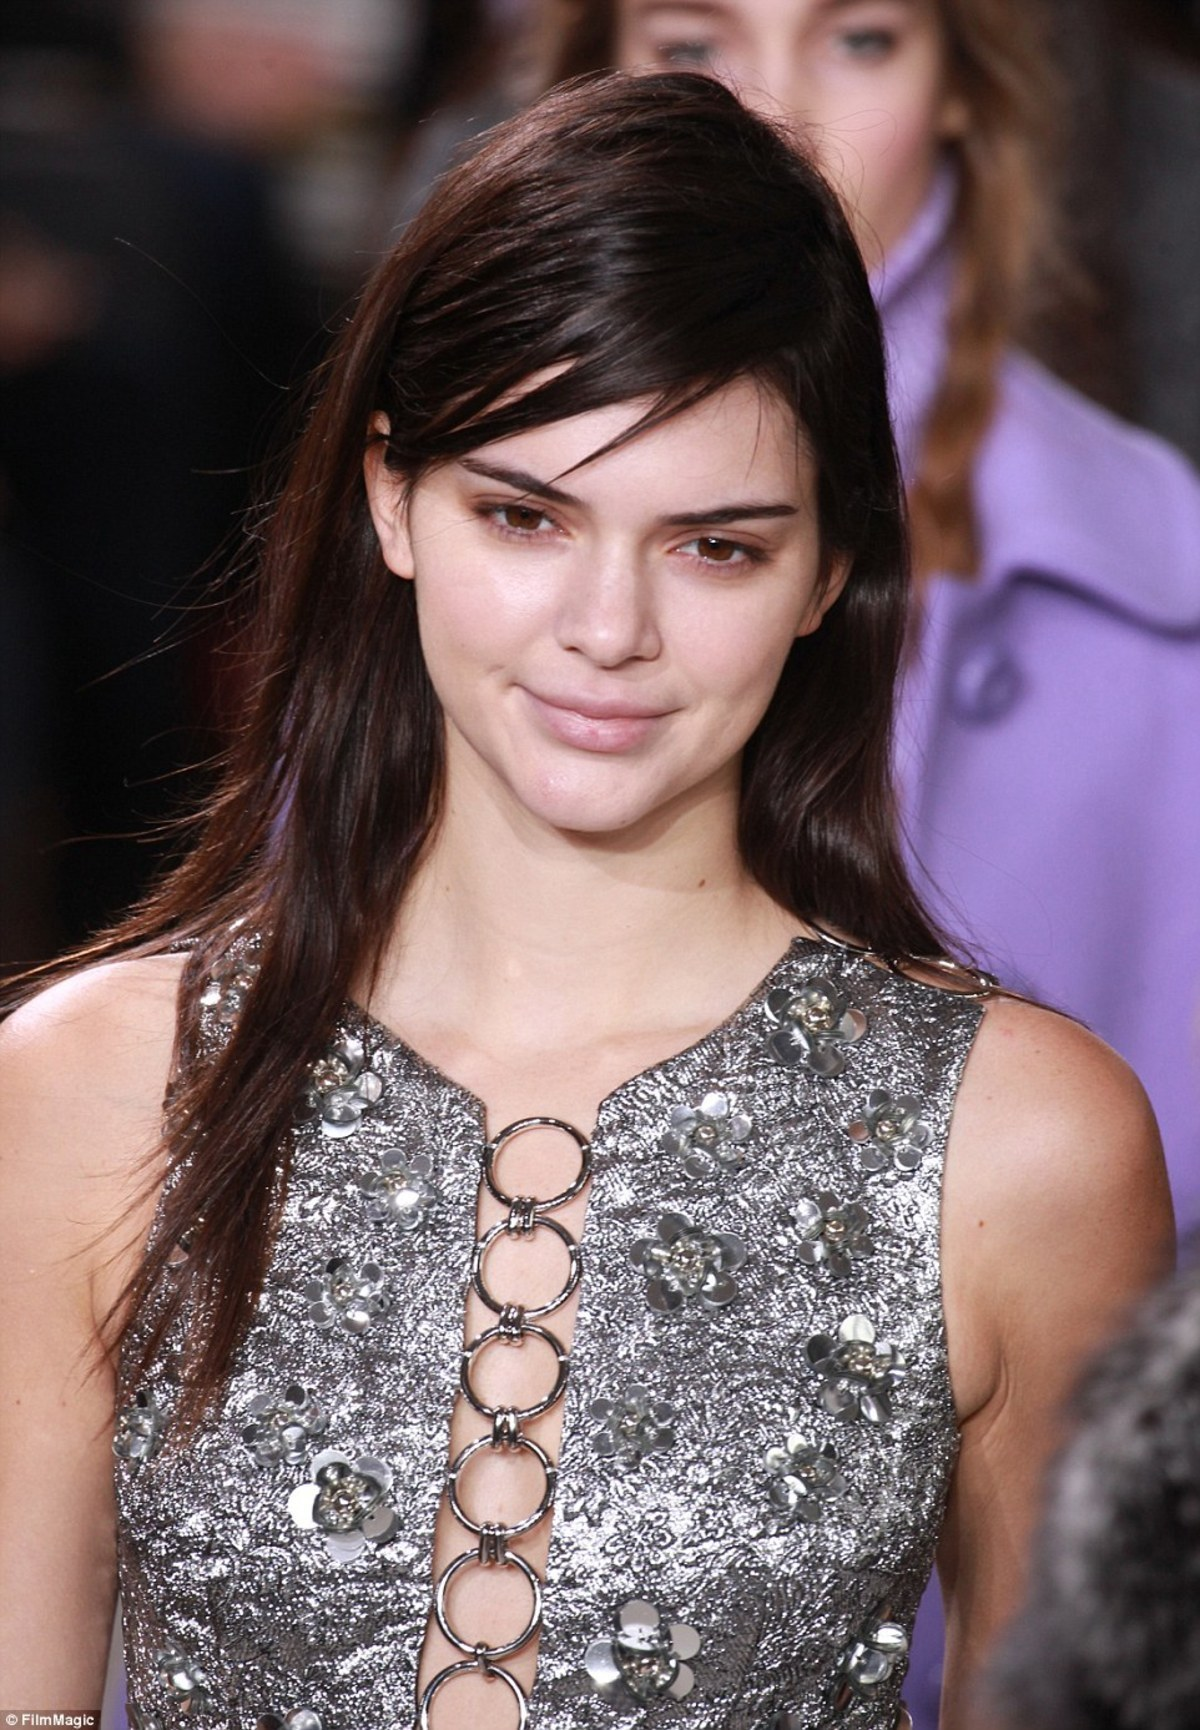 315168A400000578-3451309-Daring_Kendall_Jenner_proved_she_is_one_of_the_most_daring_catwa-a-29_1455728039640